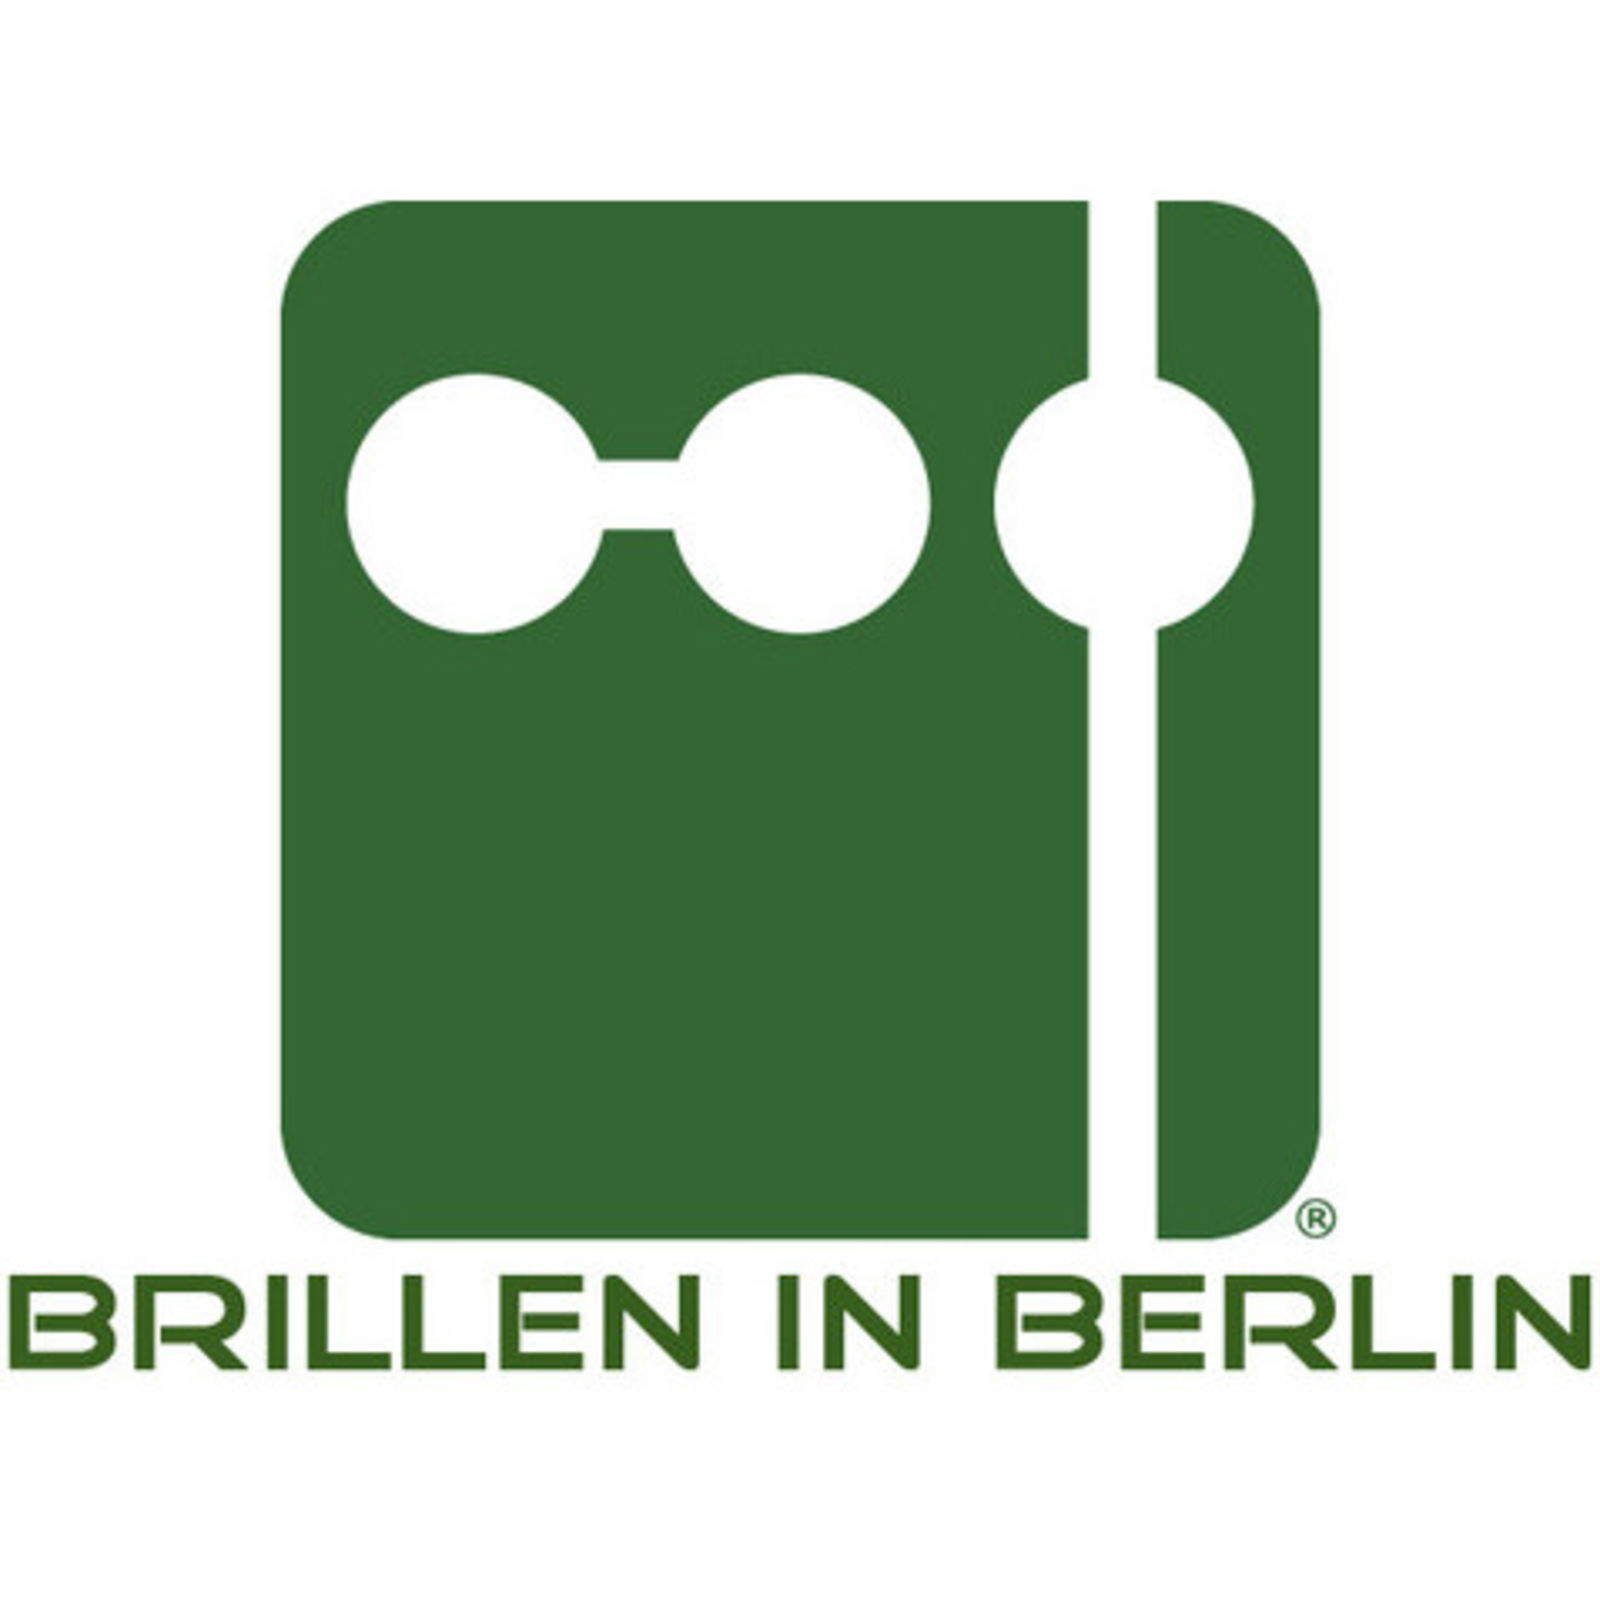 BRILLEN IN BERLIN à Berlin (Bild 1)